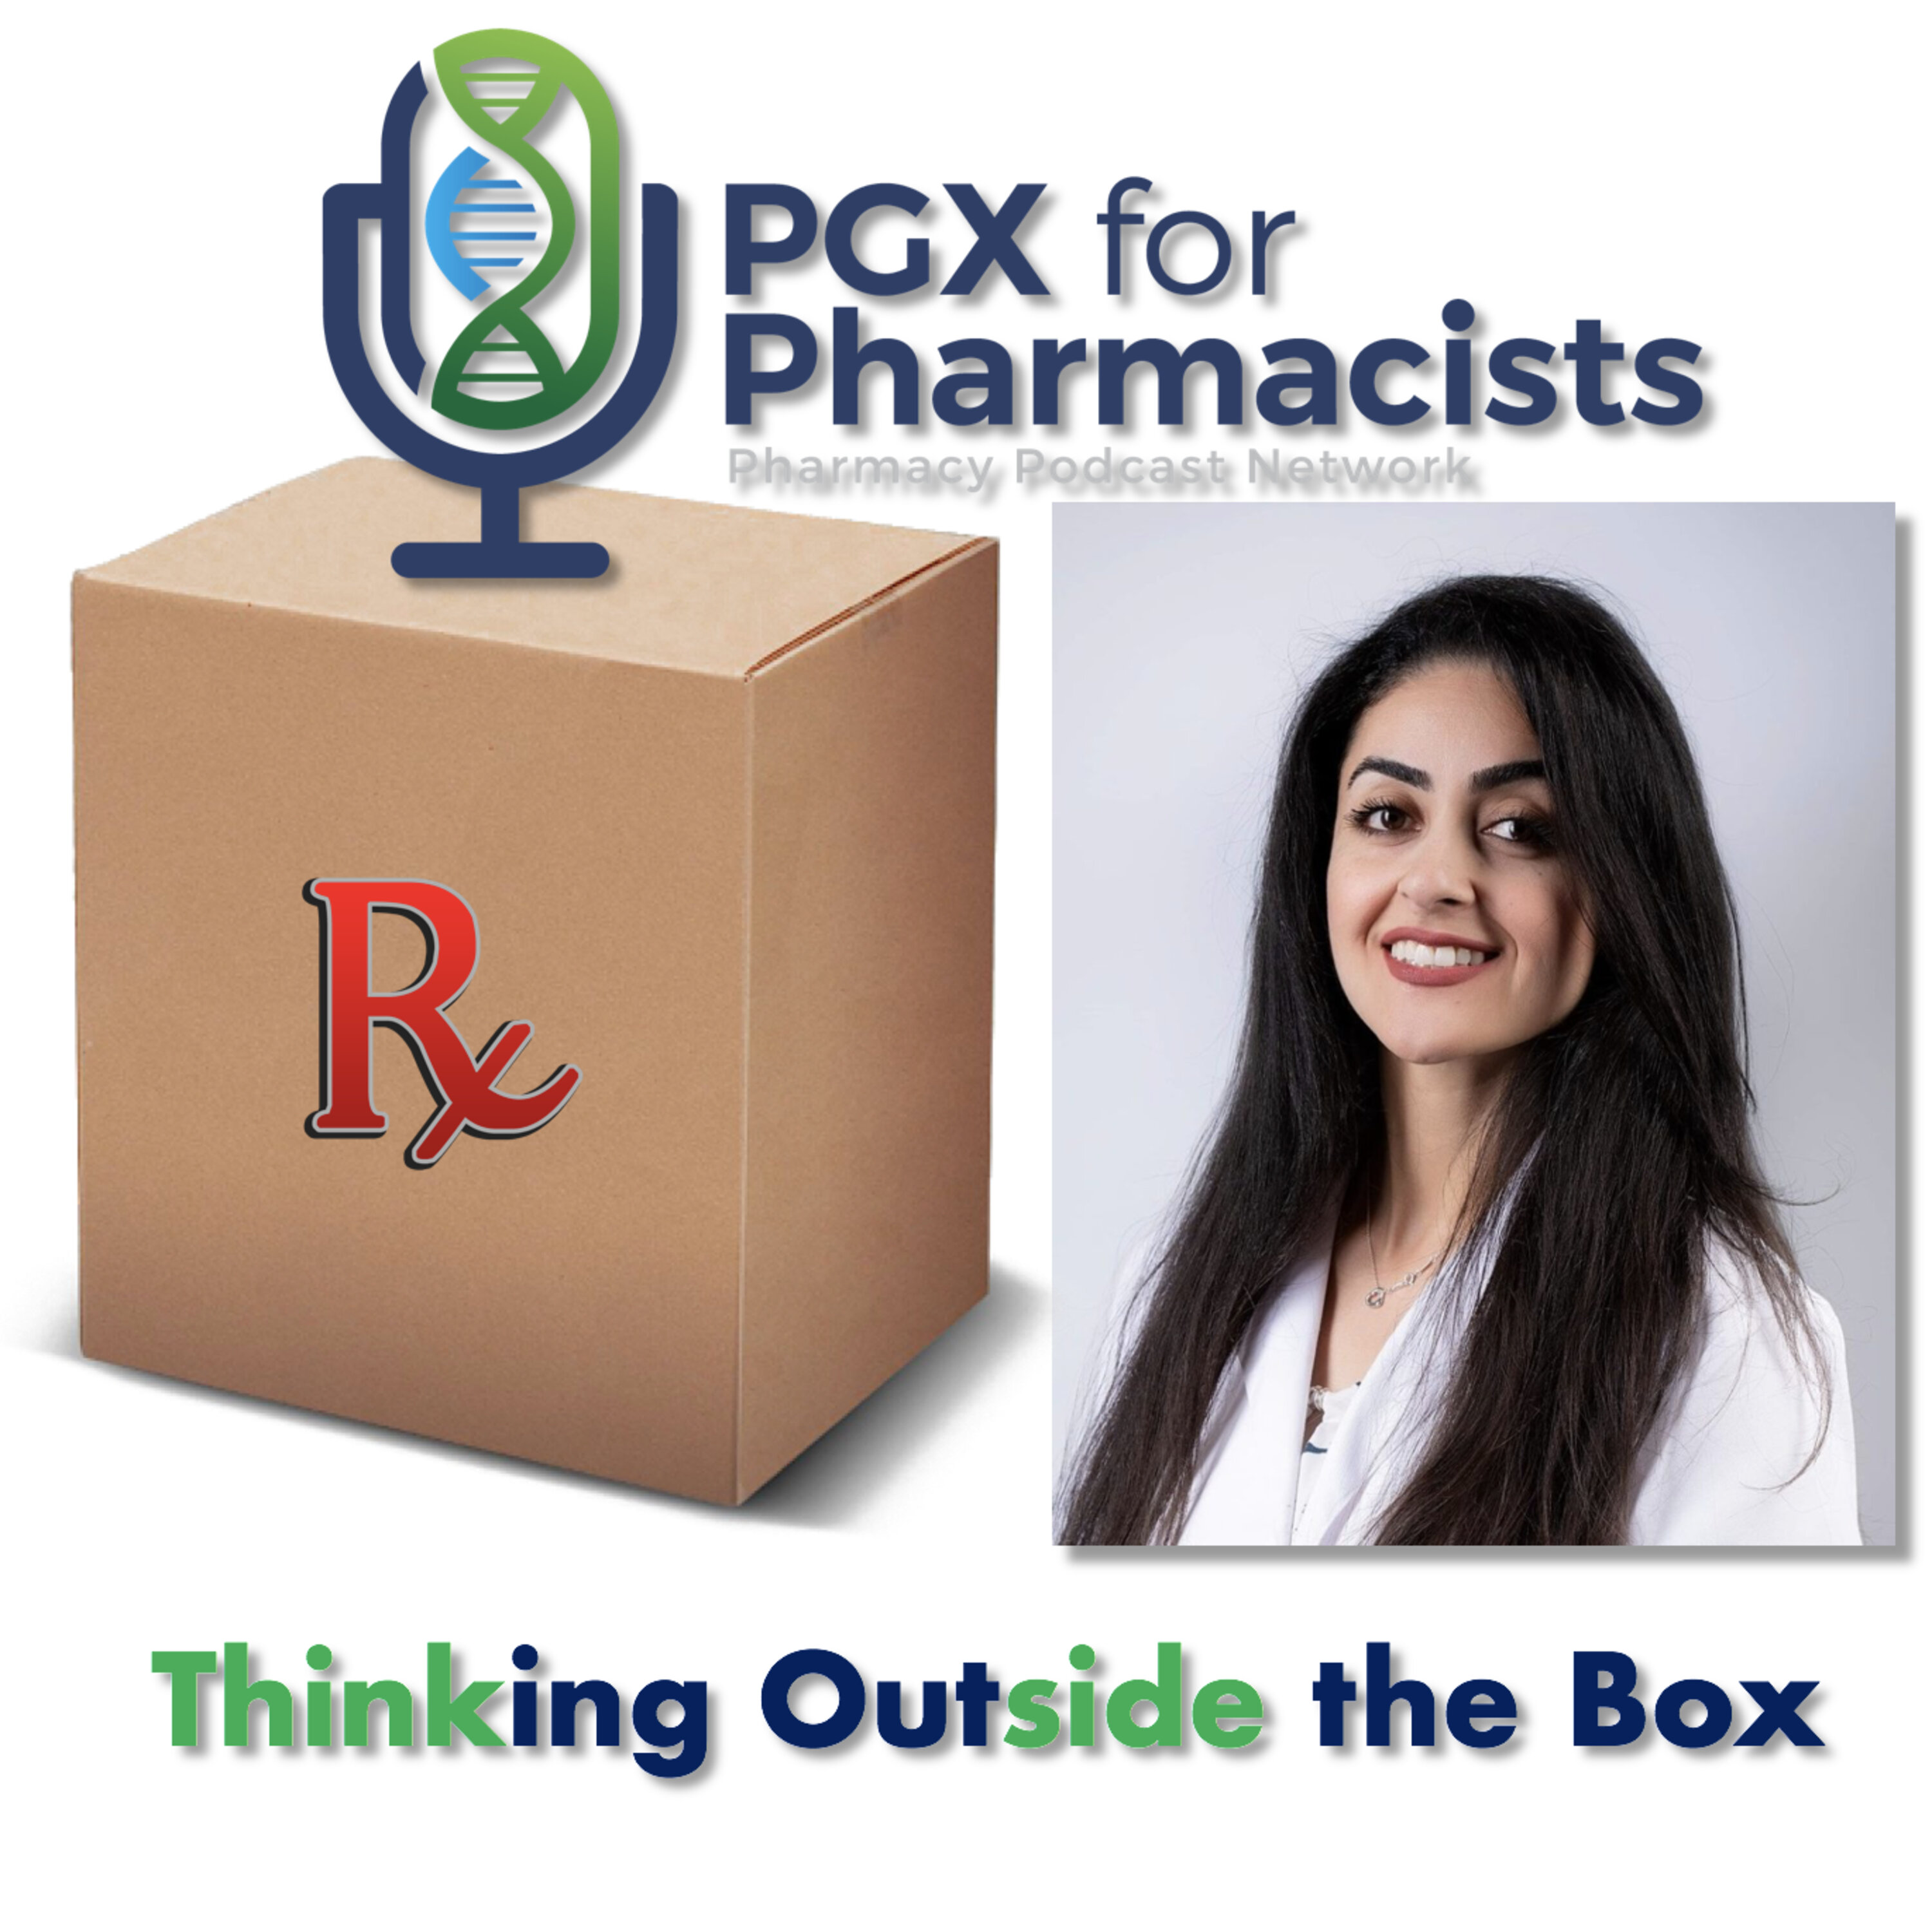 Thinking Outside the Box | PGx for Pharmacists